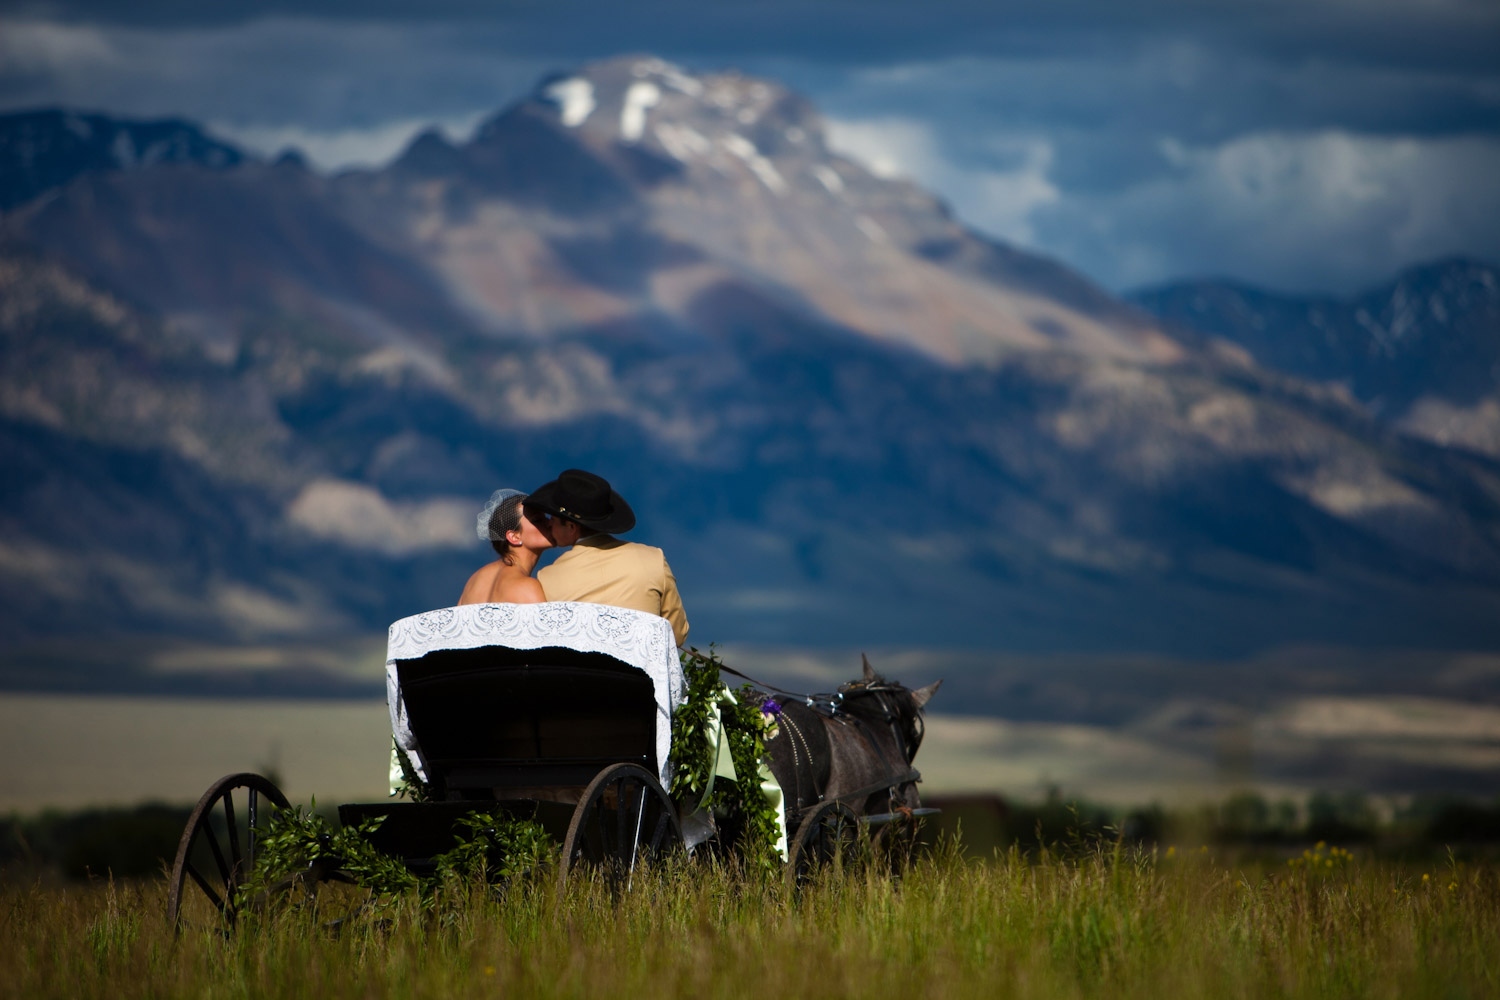 mackay-idaho-wedding-photographer-015